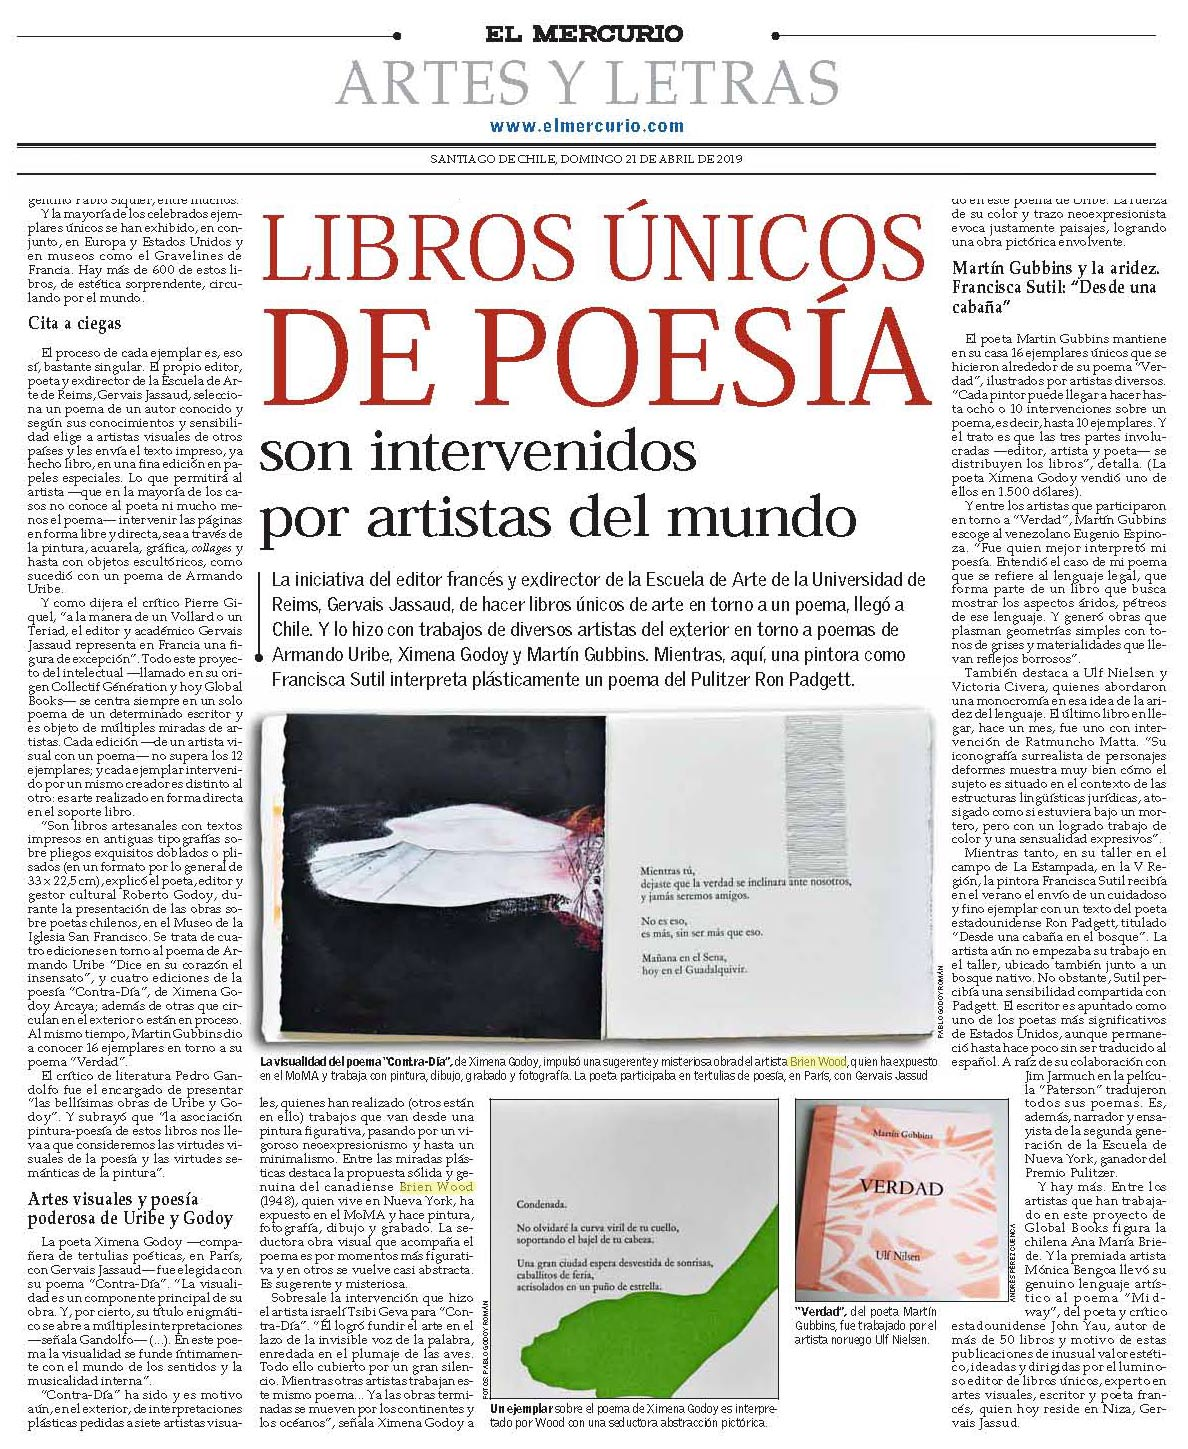 Brian Wood  in review of  Vacio Escritura Color: Global Books Exhibition  in  El Mercurio , Museo San Francisco, Santiago, Chile  PDF